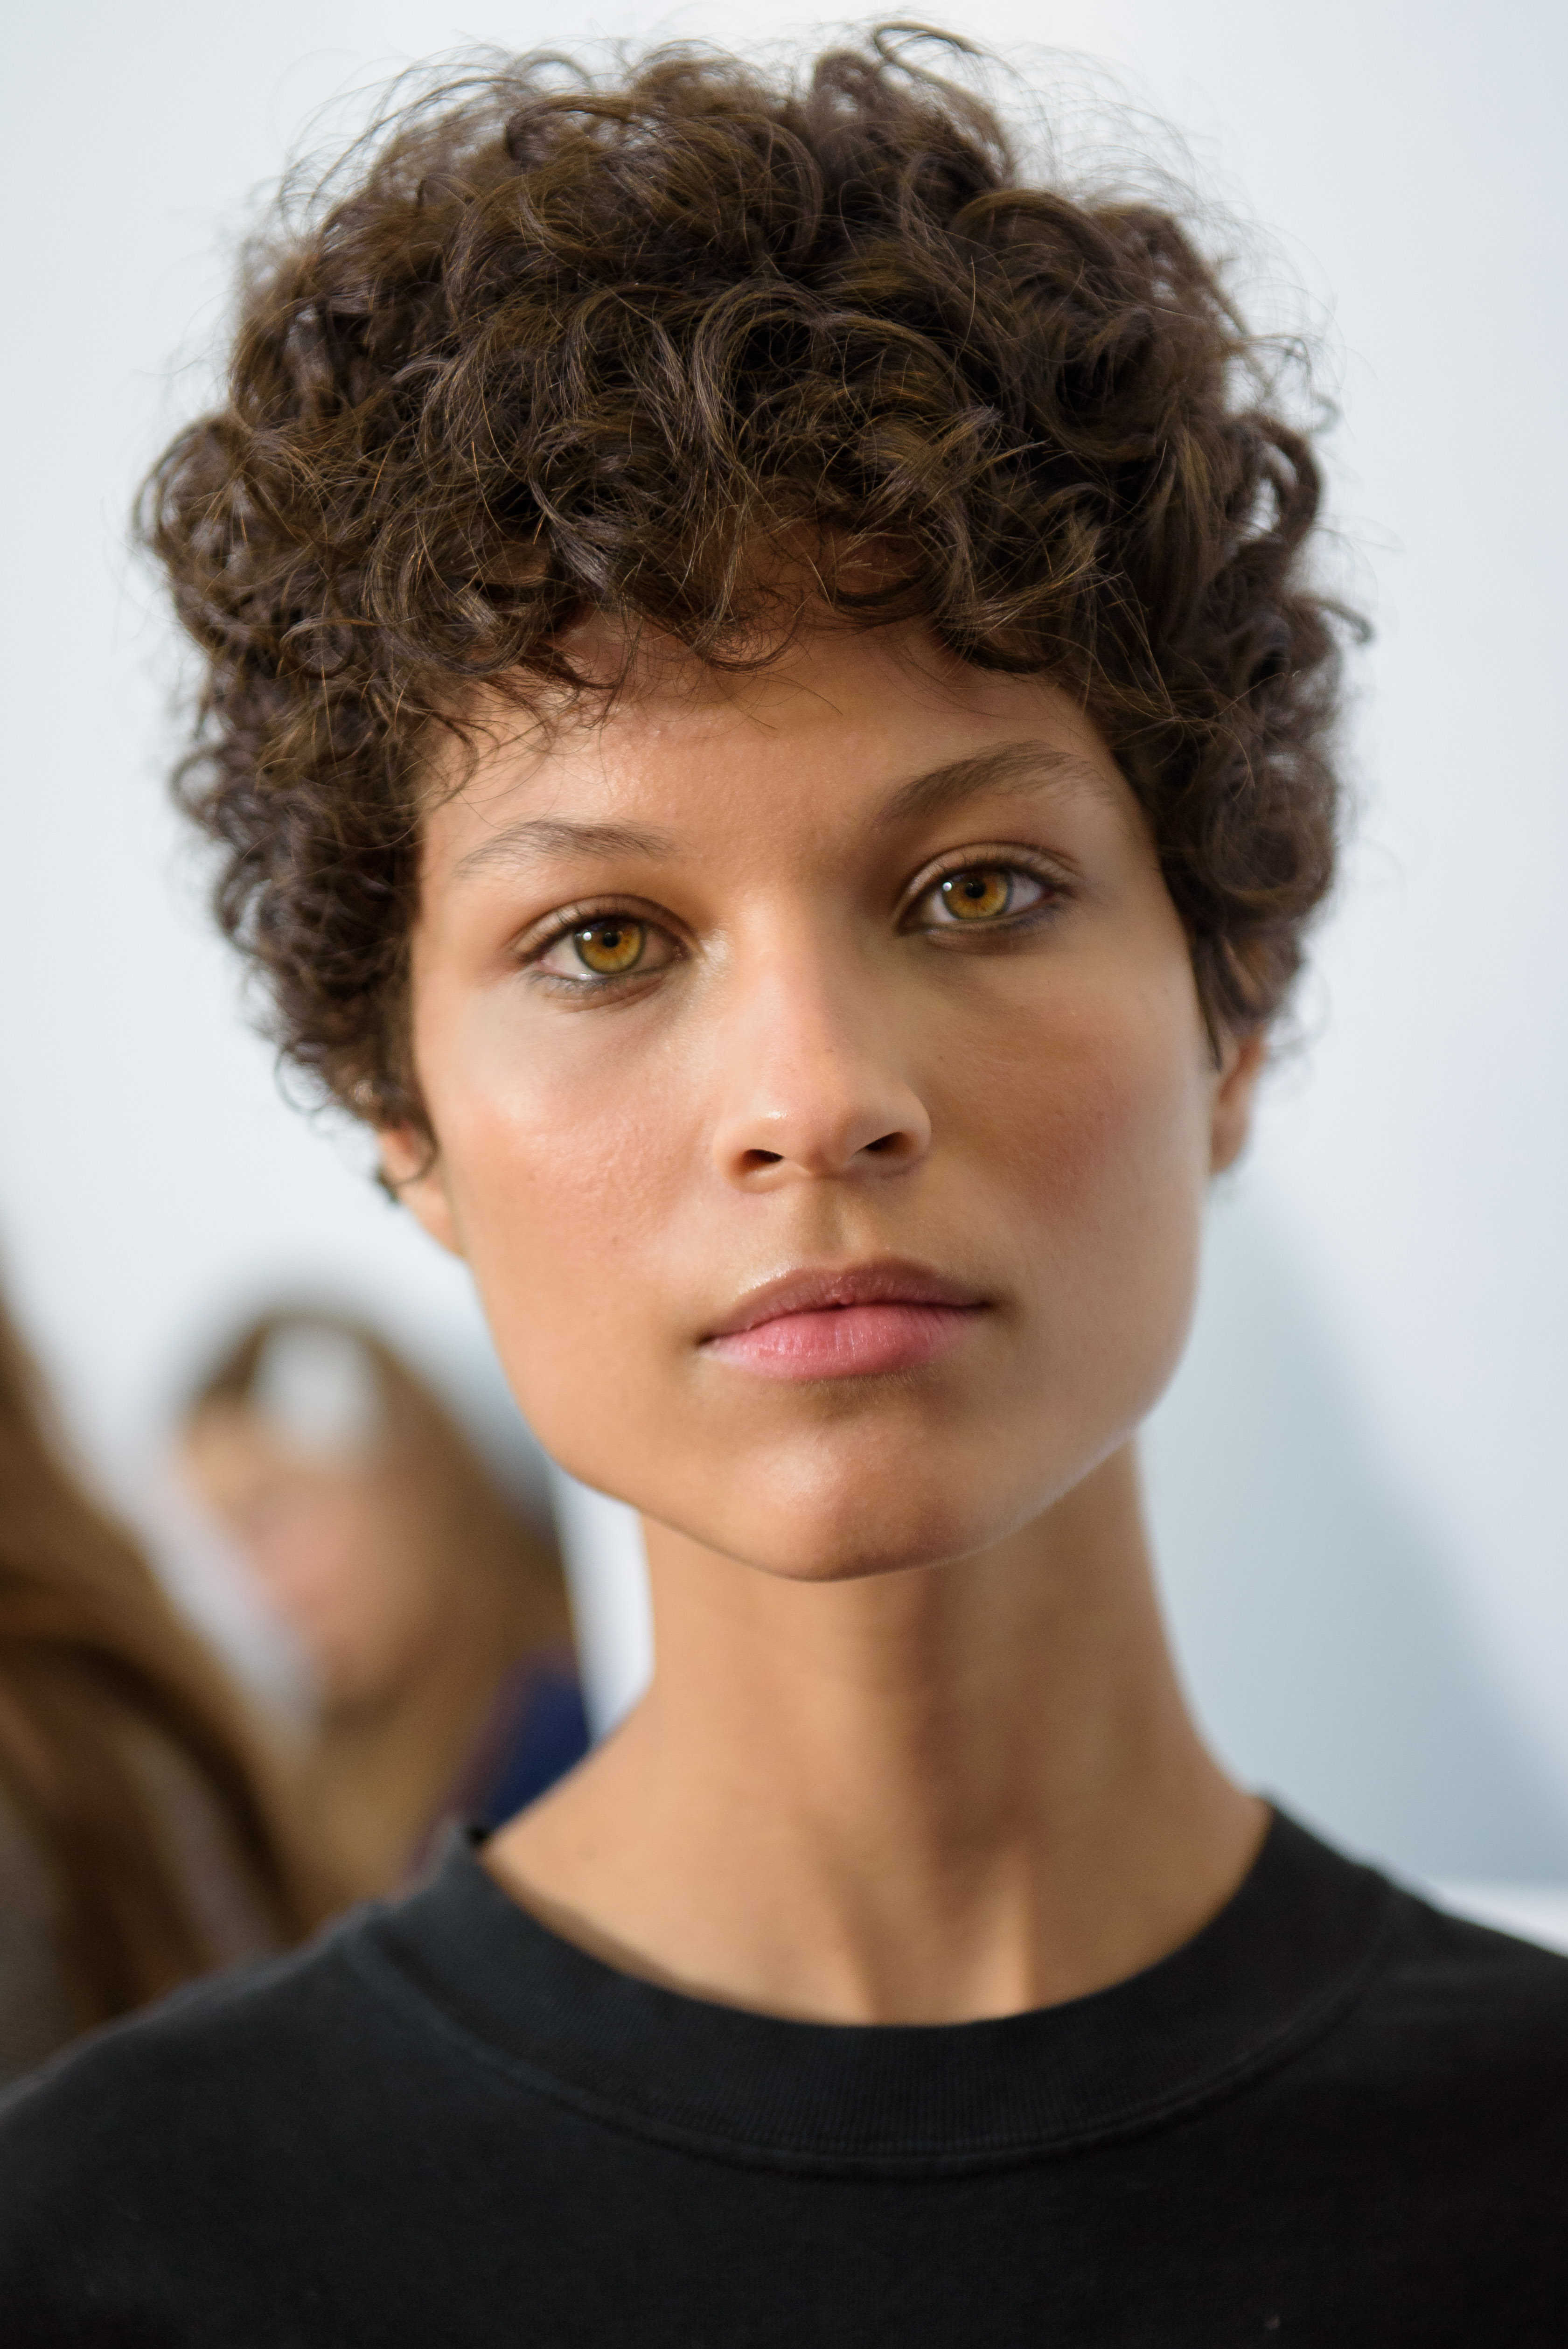 Short hairstyles for curly hair: Woman with pixie cut light brown curls